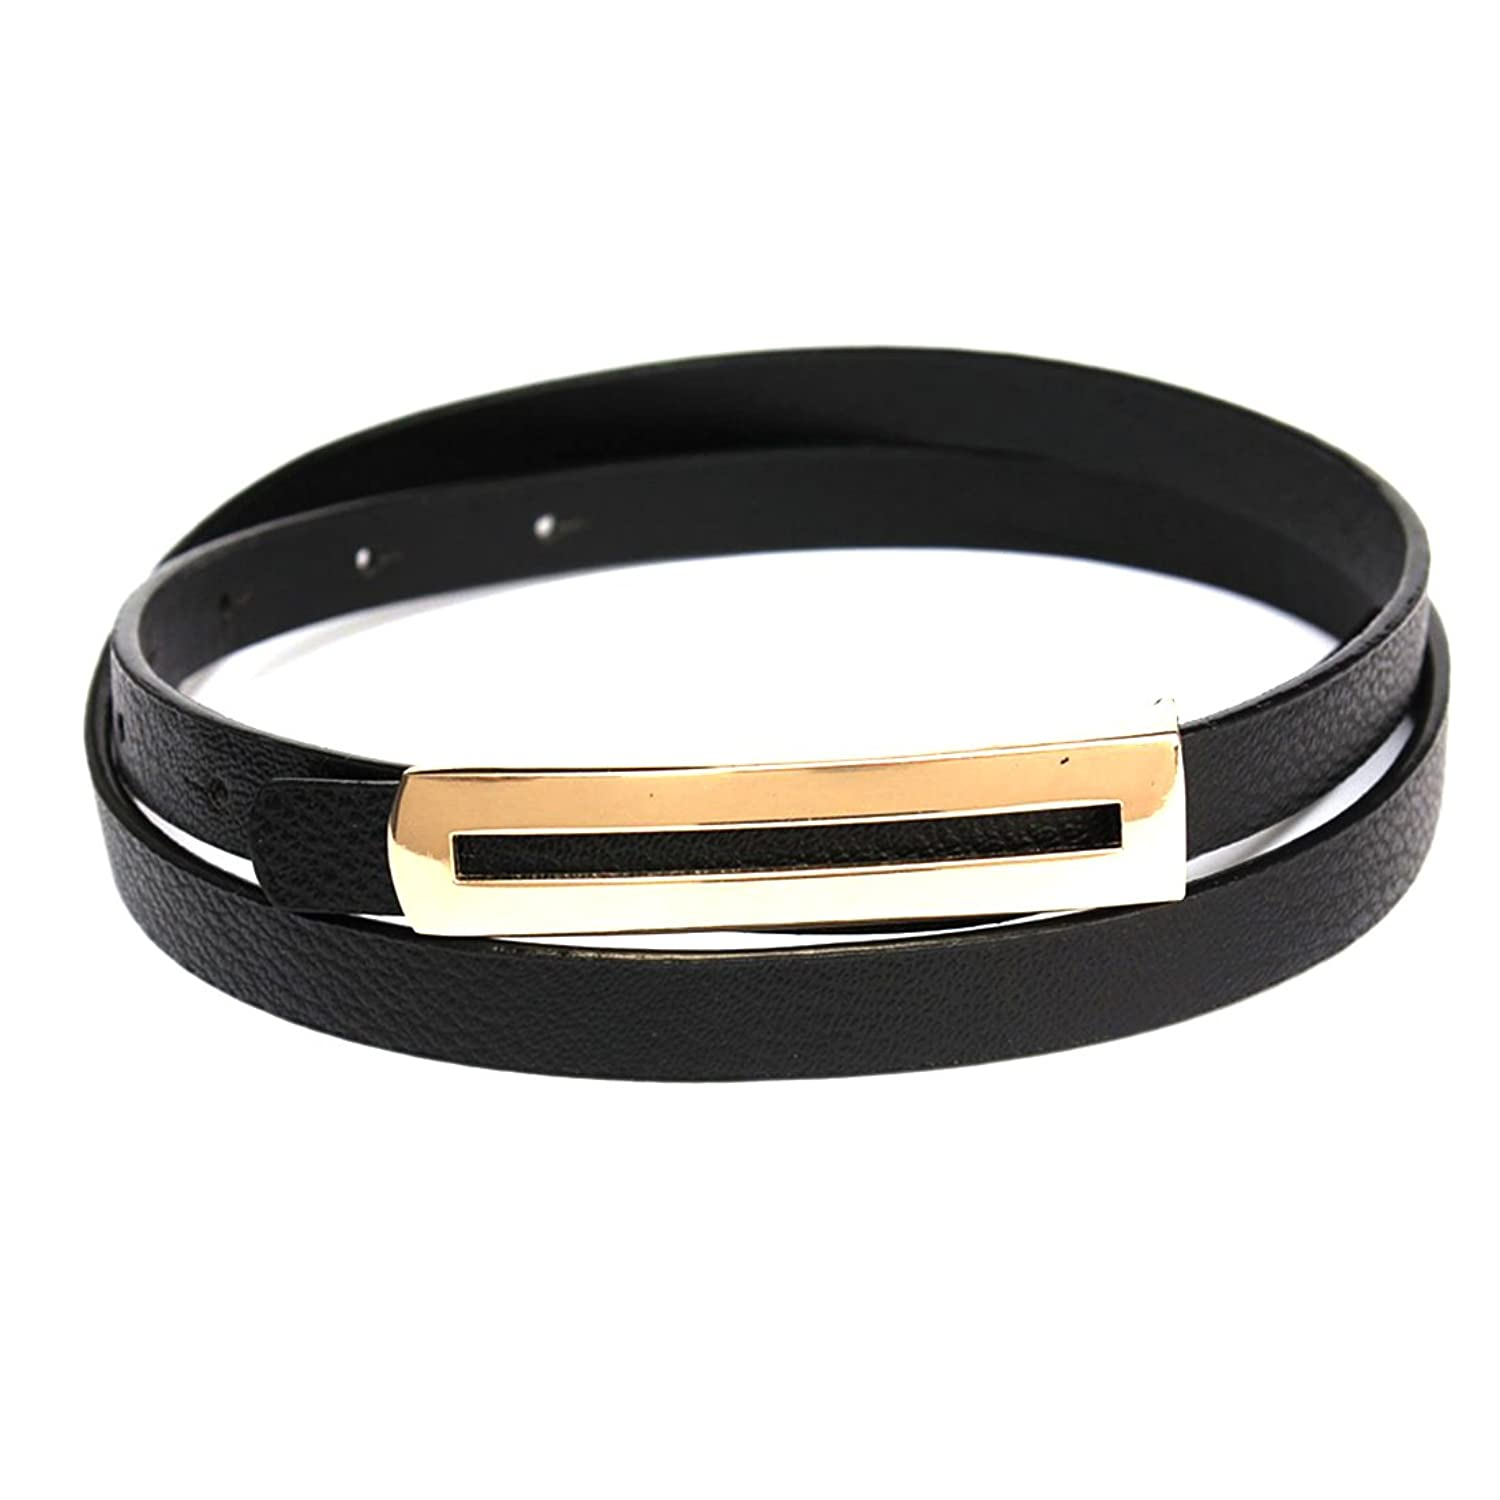 Girl Skinny Waist Belt Leather Narrow Thin Glossy Waistband